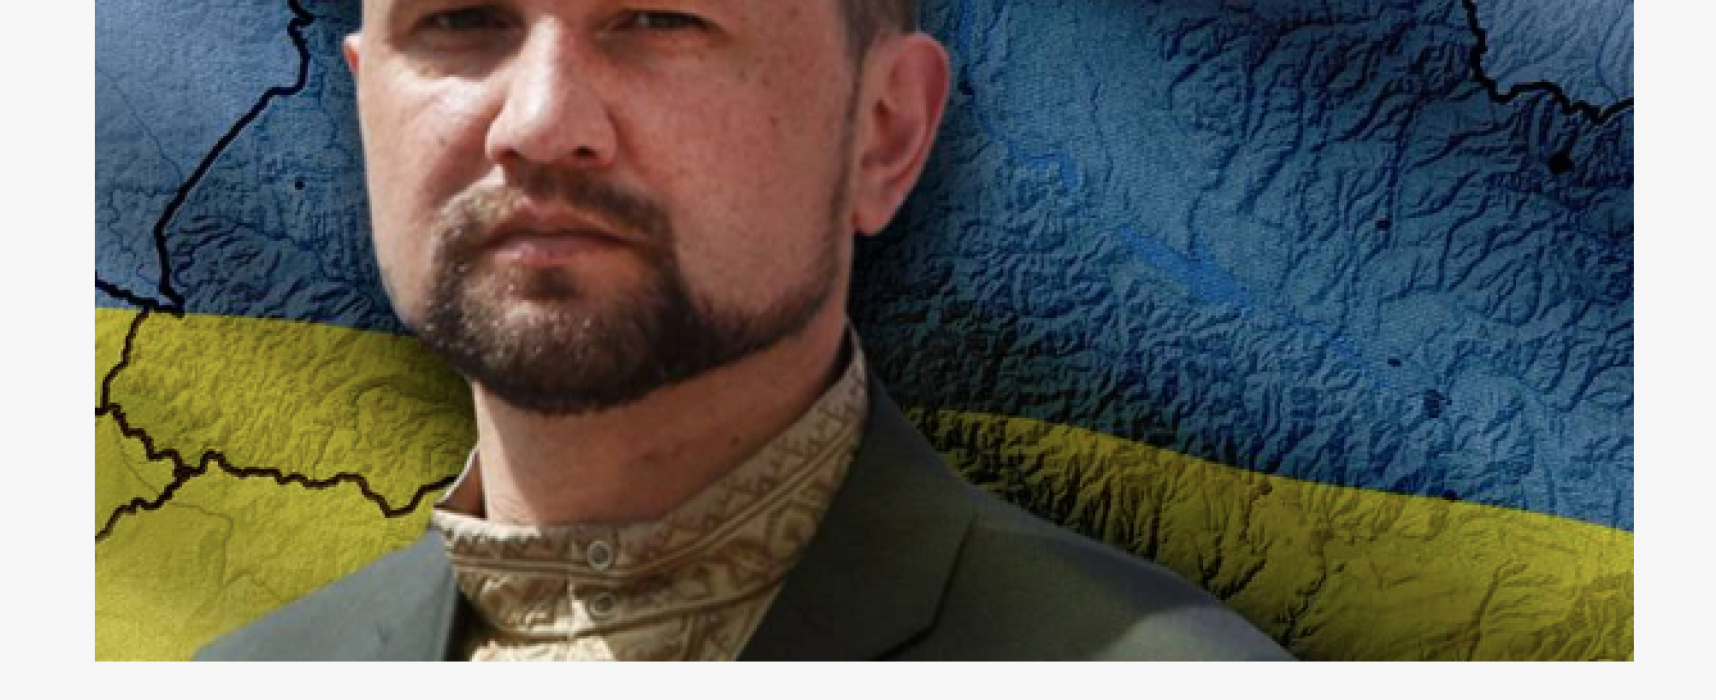 Fake: Ukraine's National Memory Institute Promotes Hatred and Incites Conflict